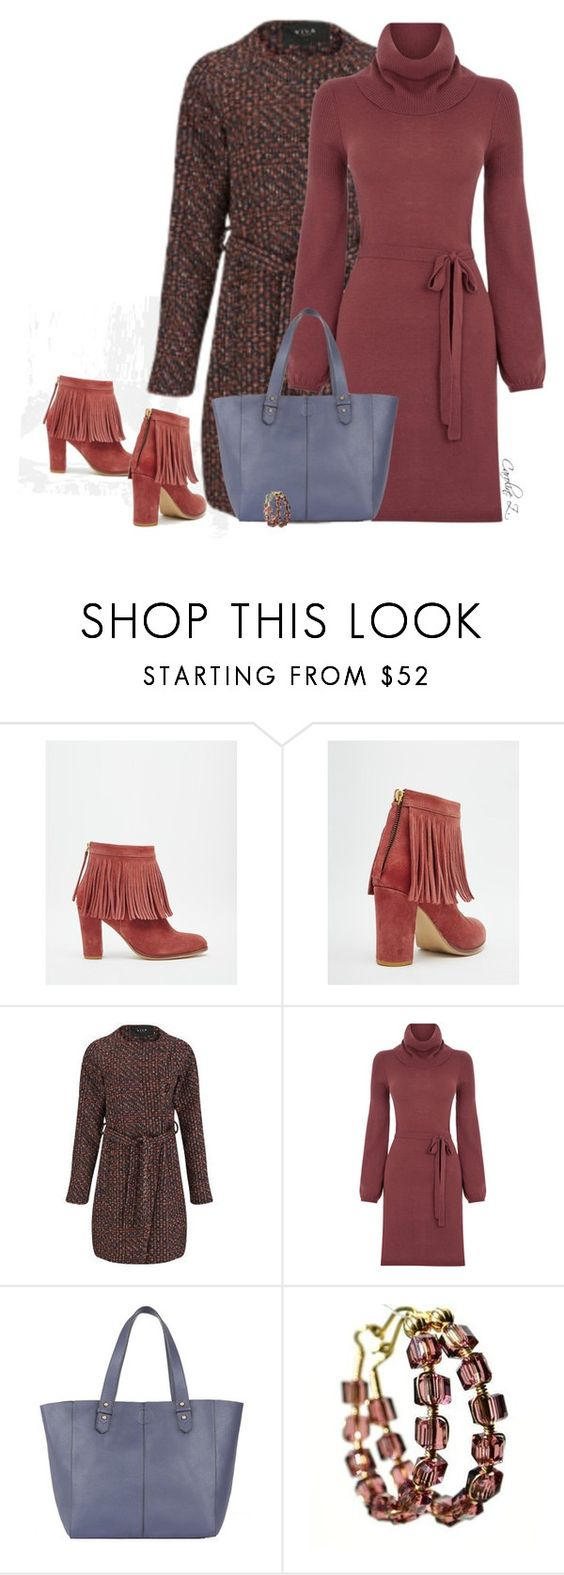 """Dress and Boots"" by carolinez1 ❤ liked on Polyvore featuring ASOS, VILA, Oasis, Warehouse, women's clothing, women's fashion, women, female, woman and misses"